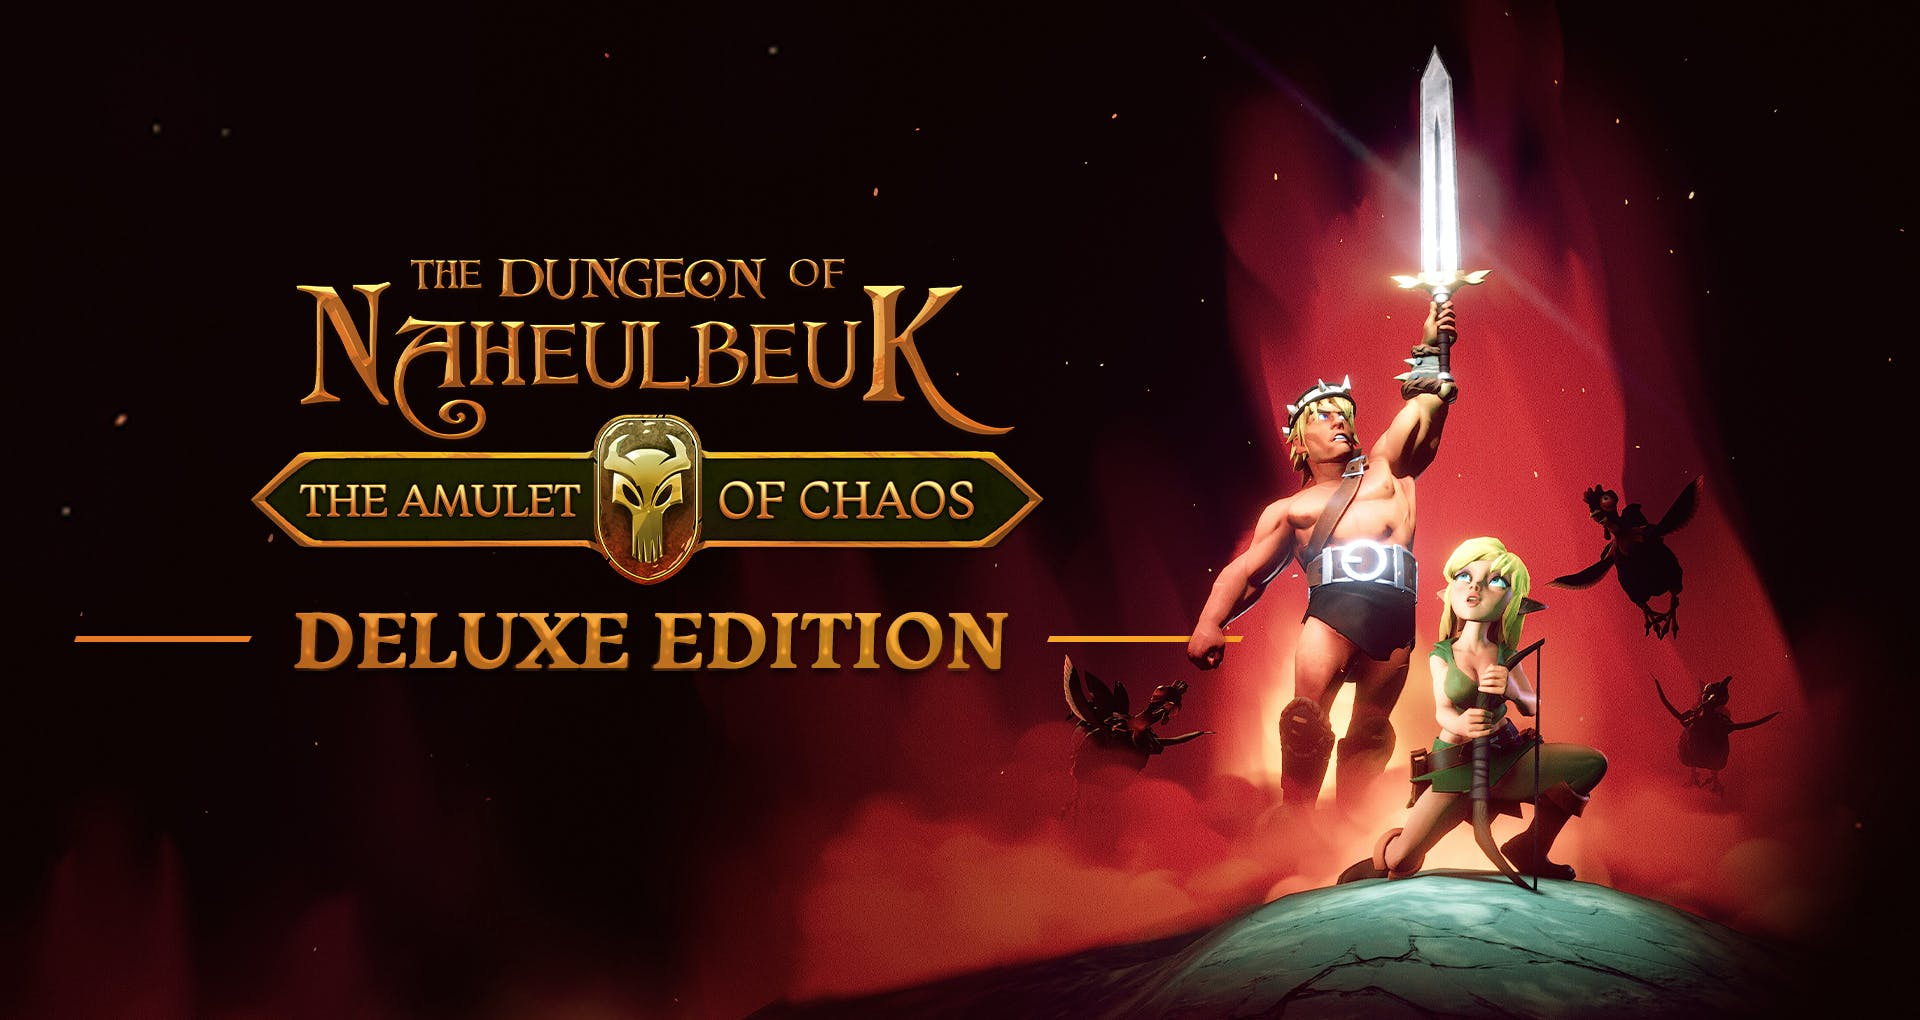 The Dungeon Of Naheulbeuk: The Amulet Of Chaos - Deluxe Edition